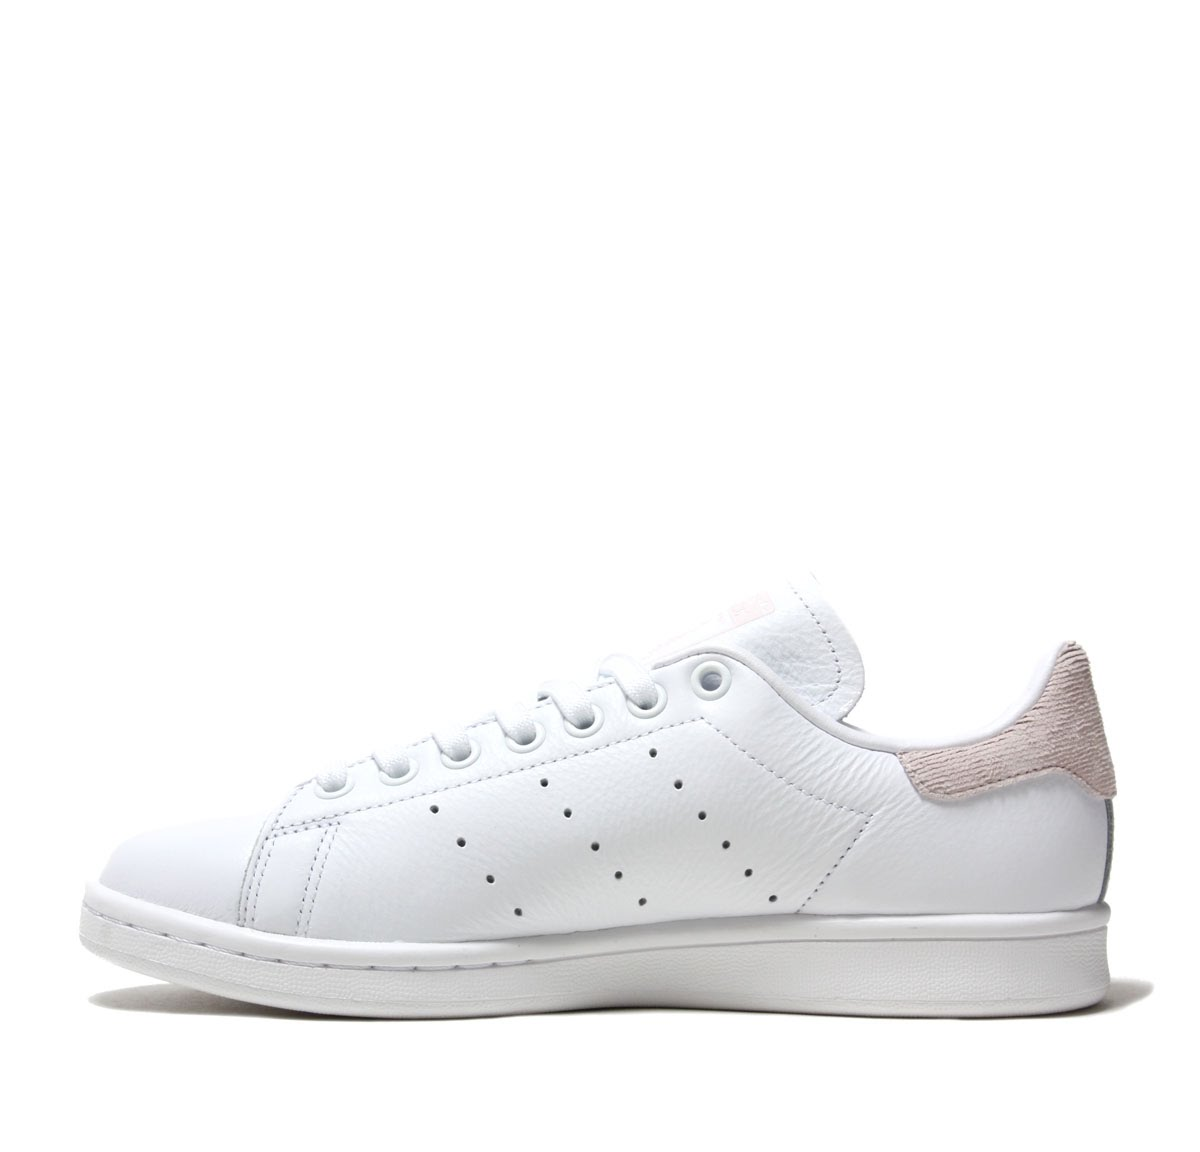 c95df31a02 ... adidas Originals Stan Smith W (Adidas originals Stan Smith W) RUNNING  WHITE/RUNNING ...